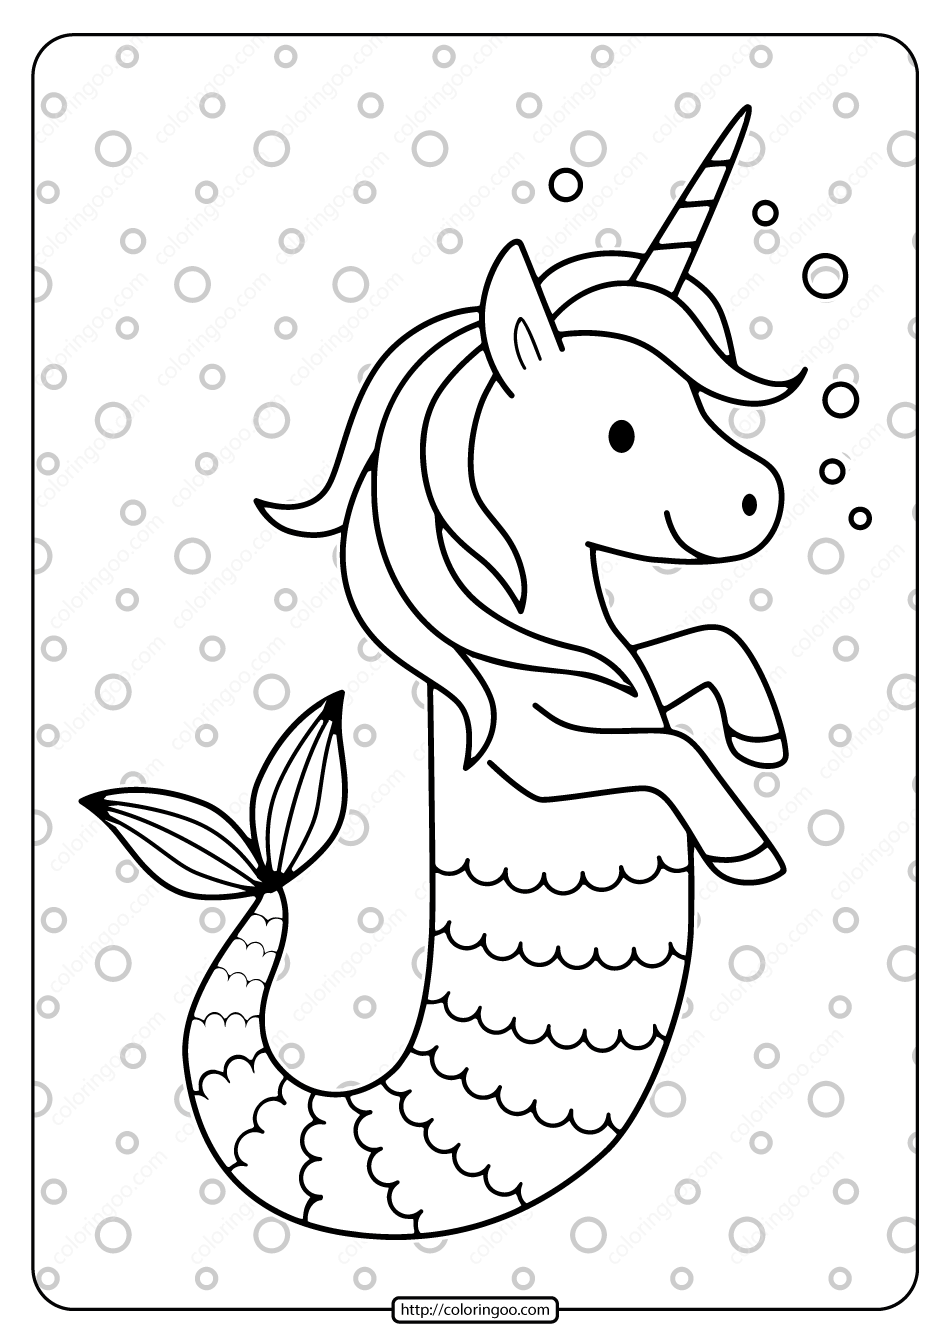 Free Printable Unicorn Seahorse Pdf Coloring Page Unicorn Coloring Pages Free Printable Coloring Sheets Printables Free Kids